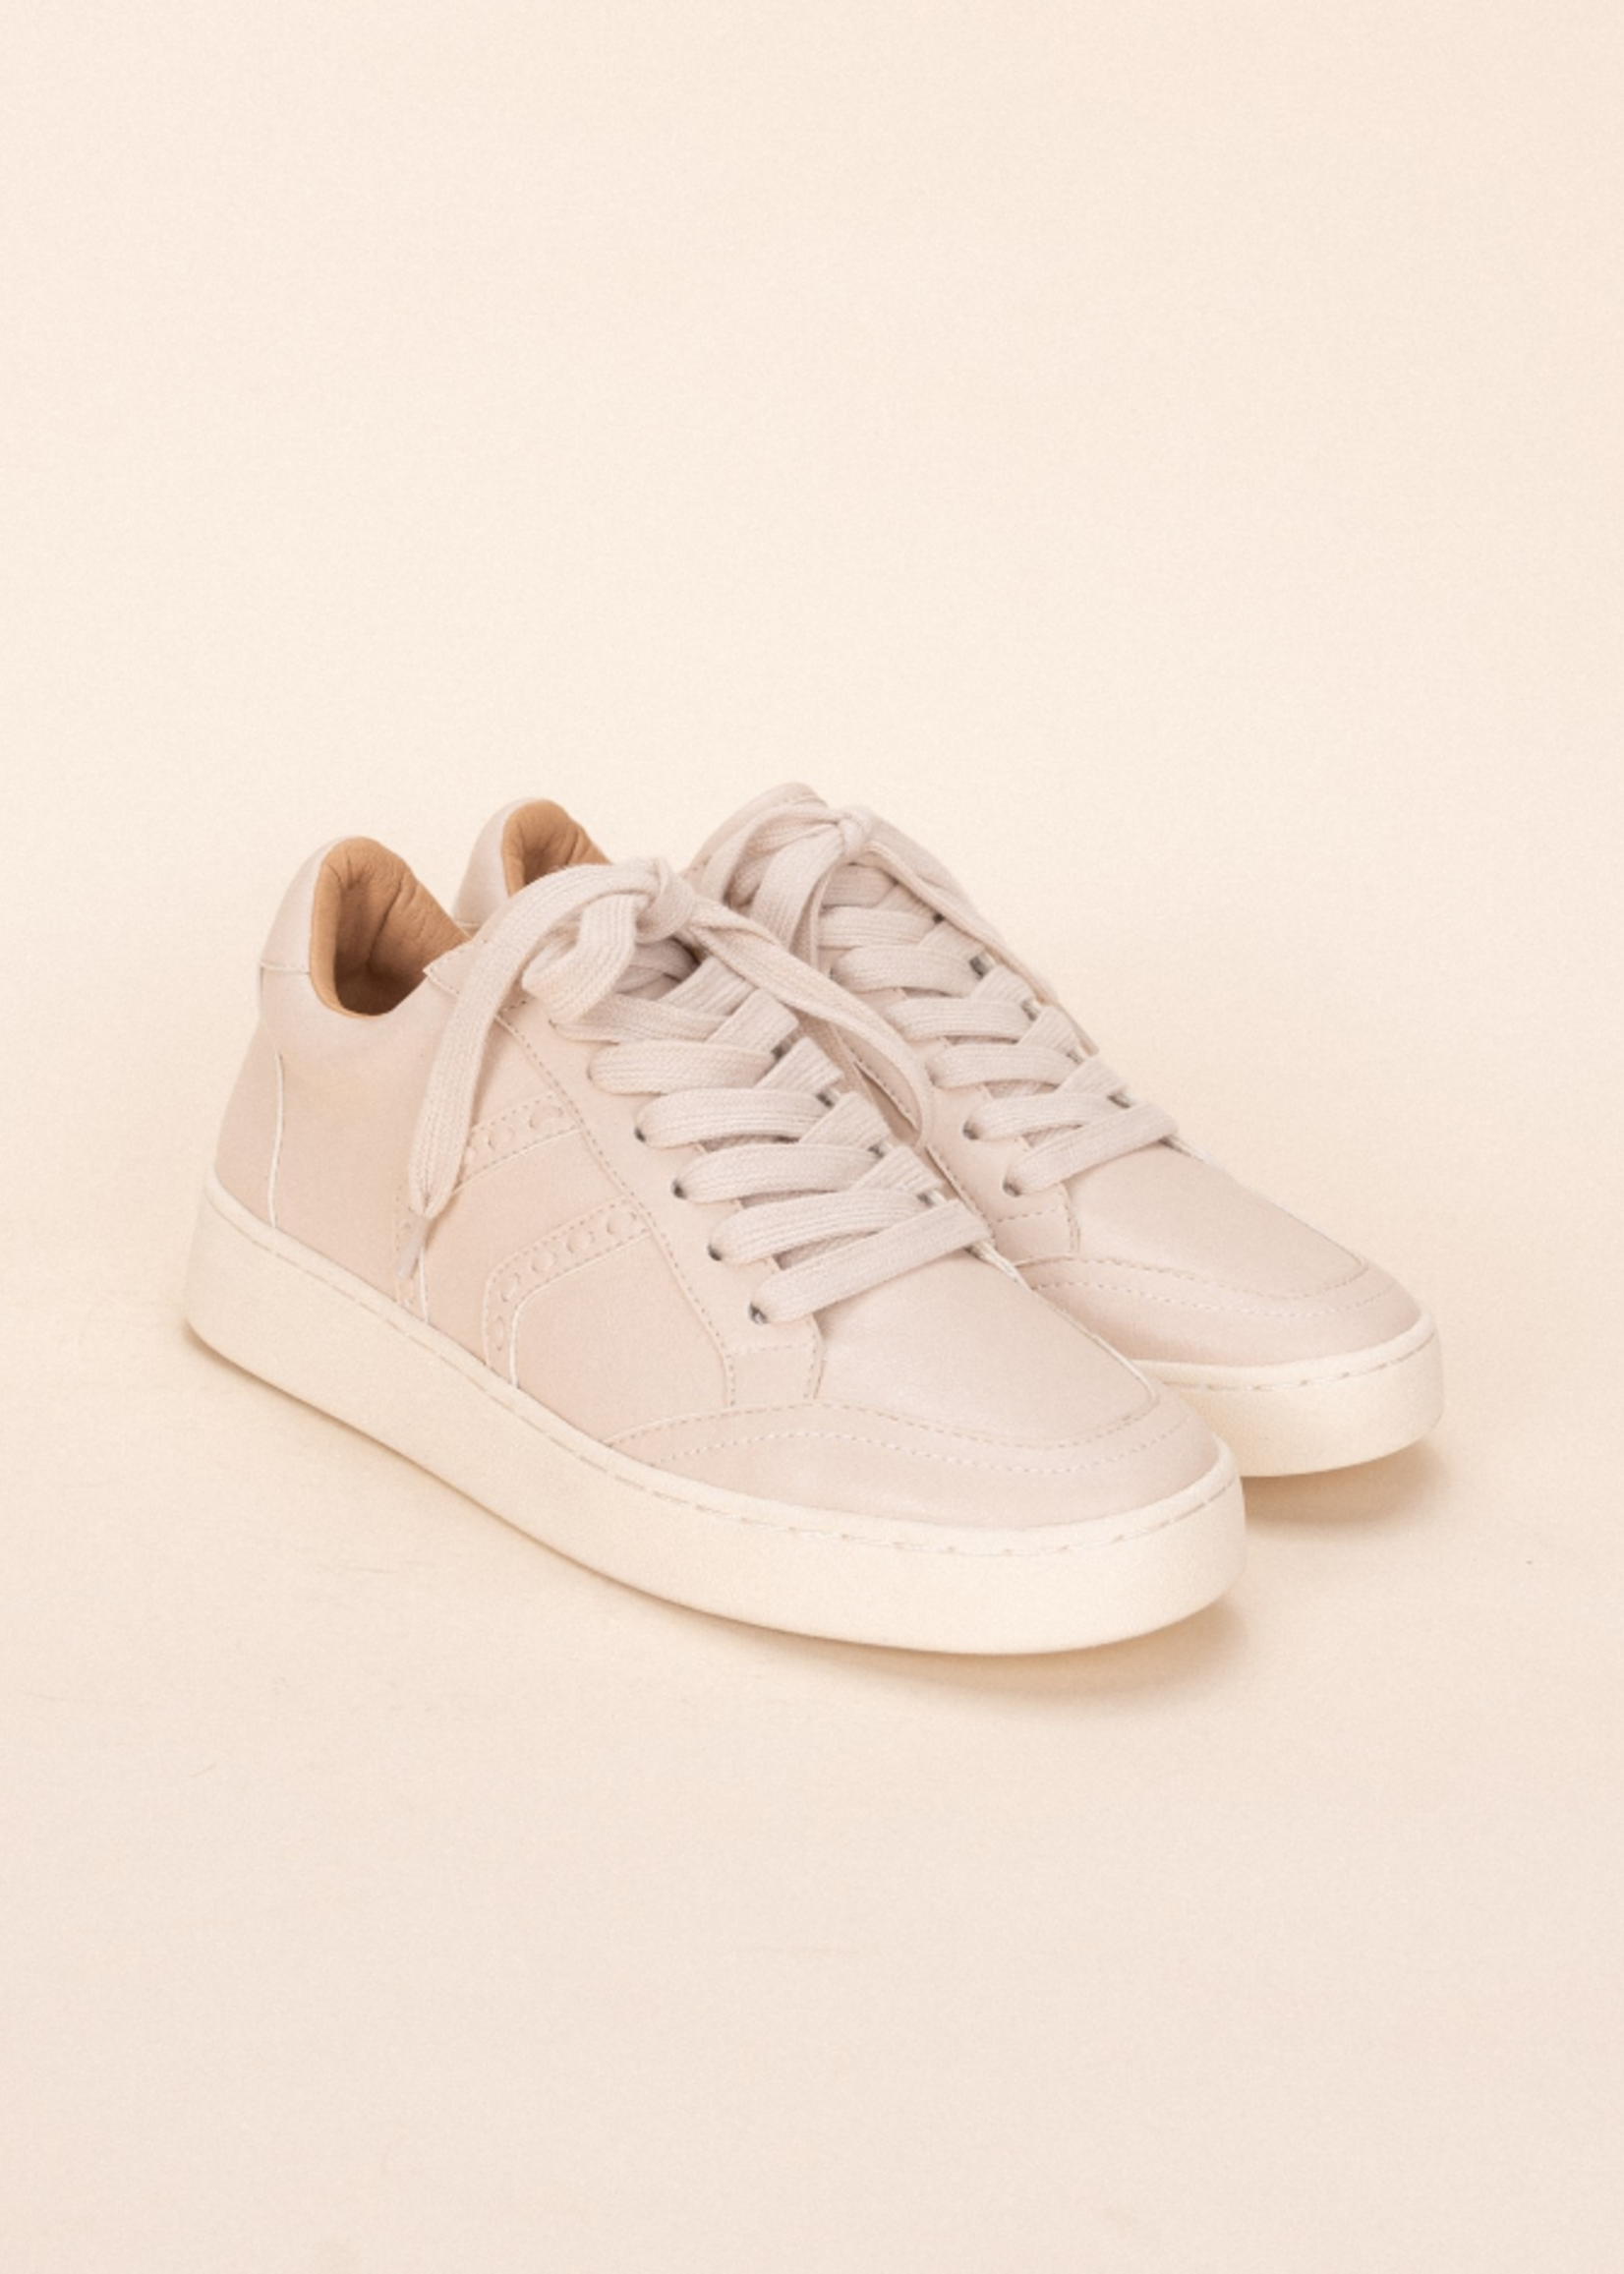 Sneaker with Stitching - Beige